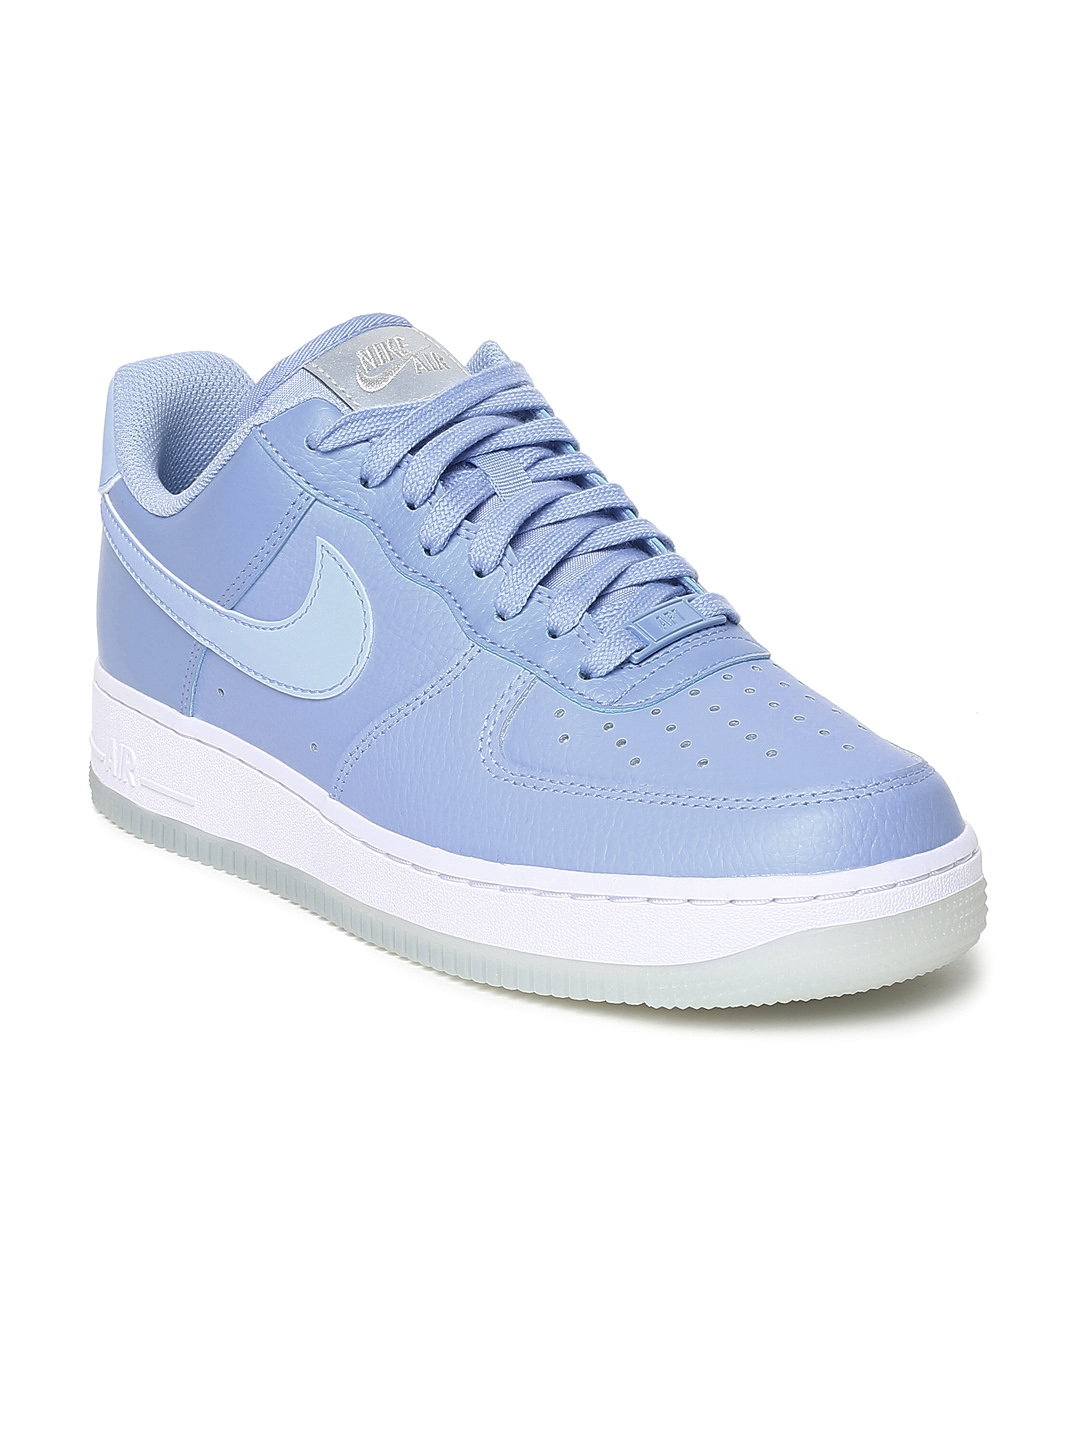 dc4a0ca03 Buy Nike Women Blue Air Force 1 '07 Ess Leather Sneakers - Casual ...